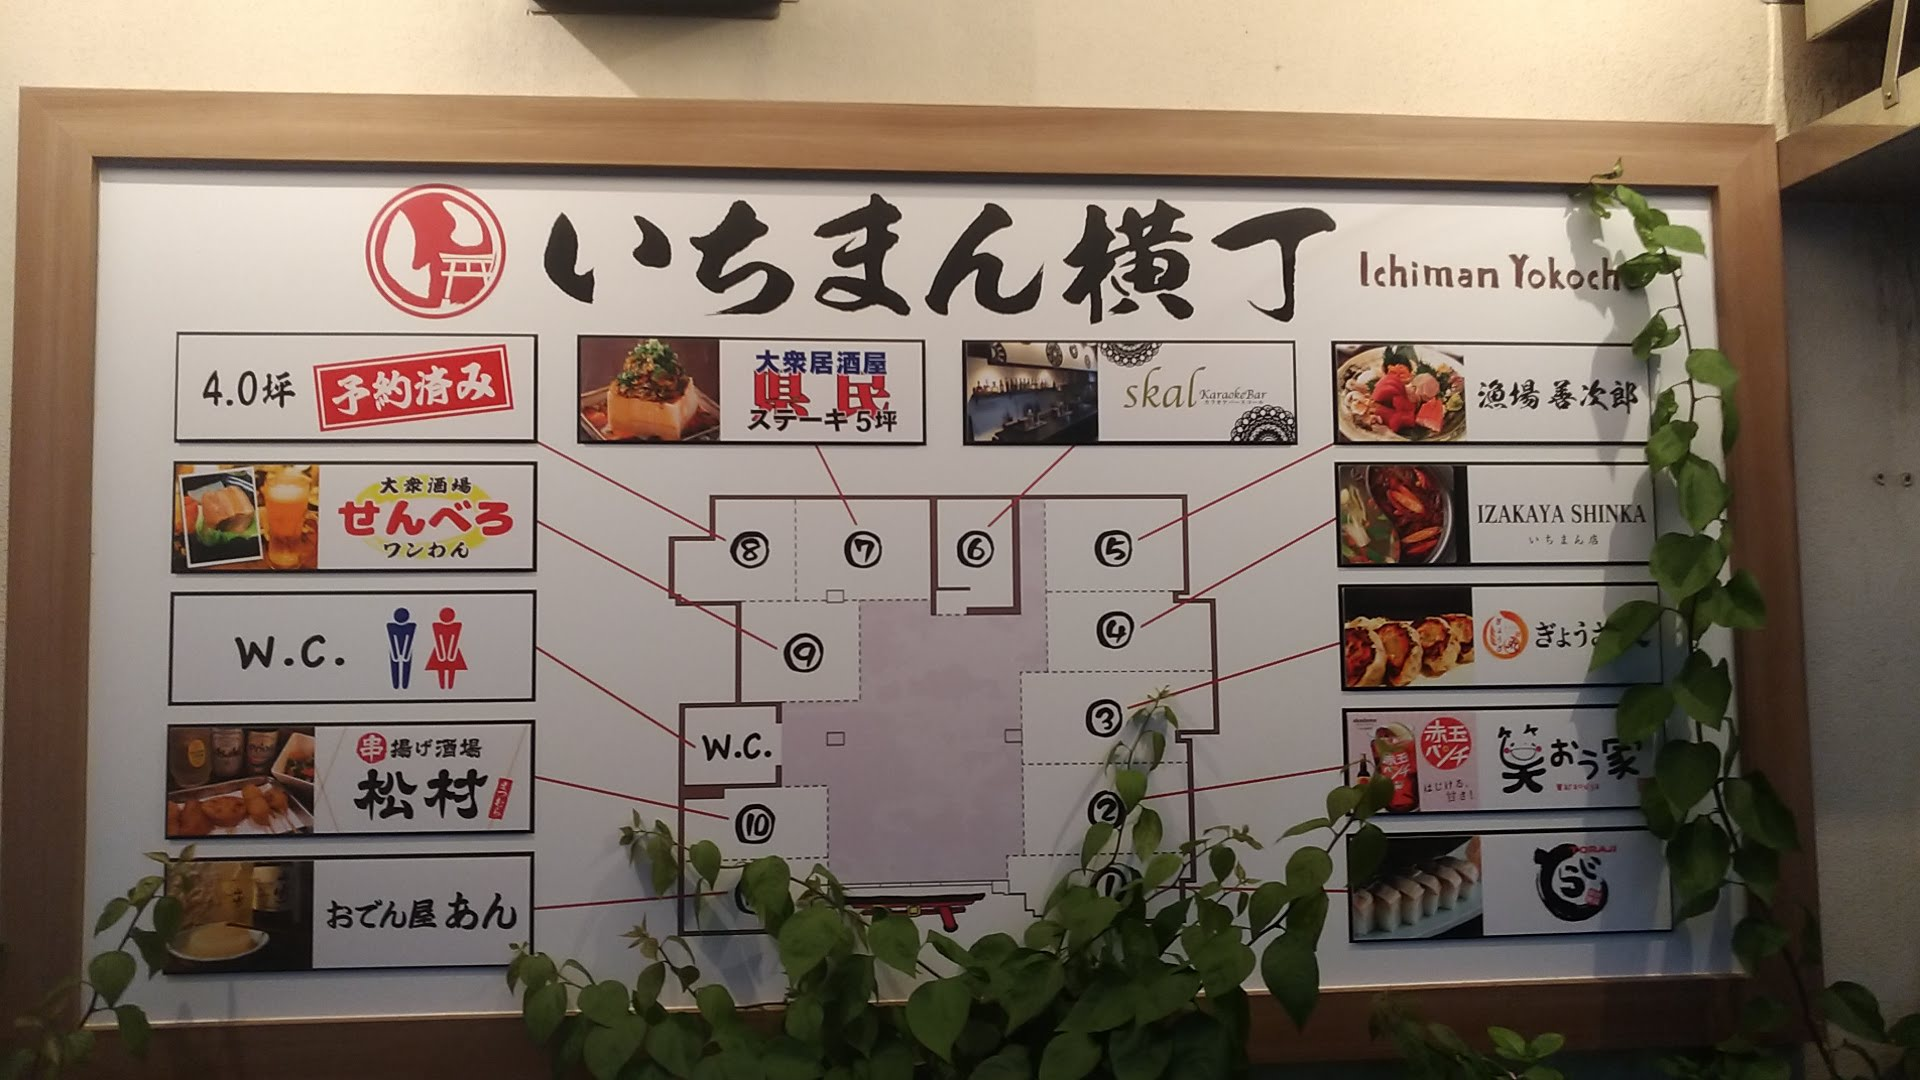 a guide map of each stall